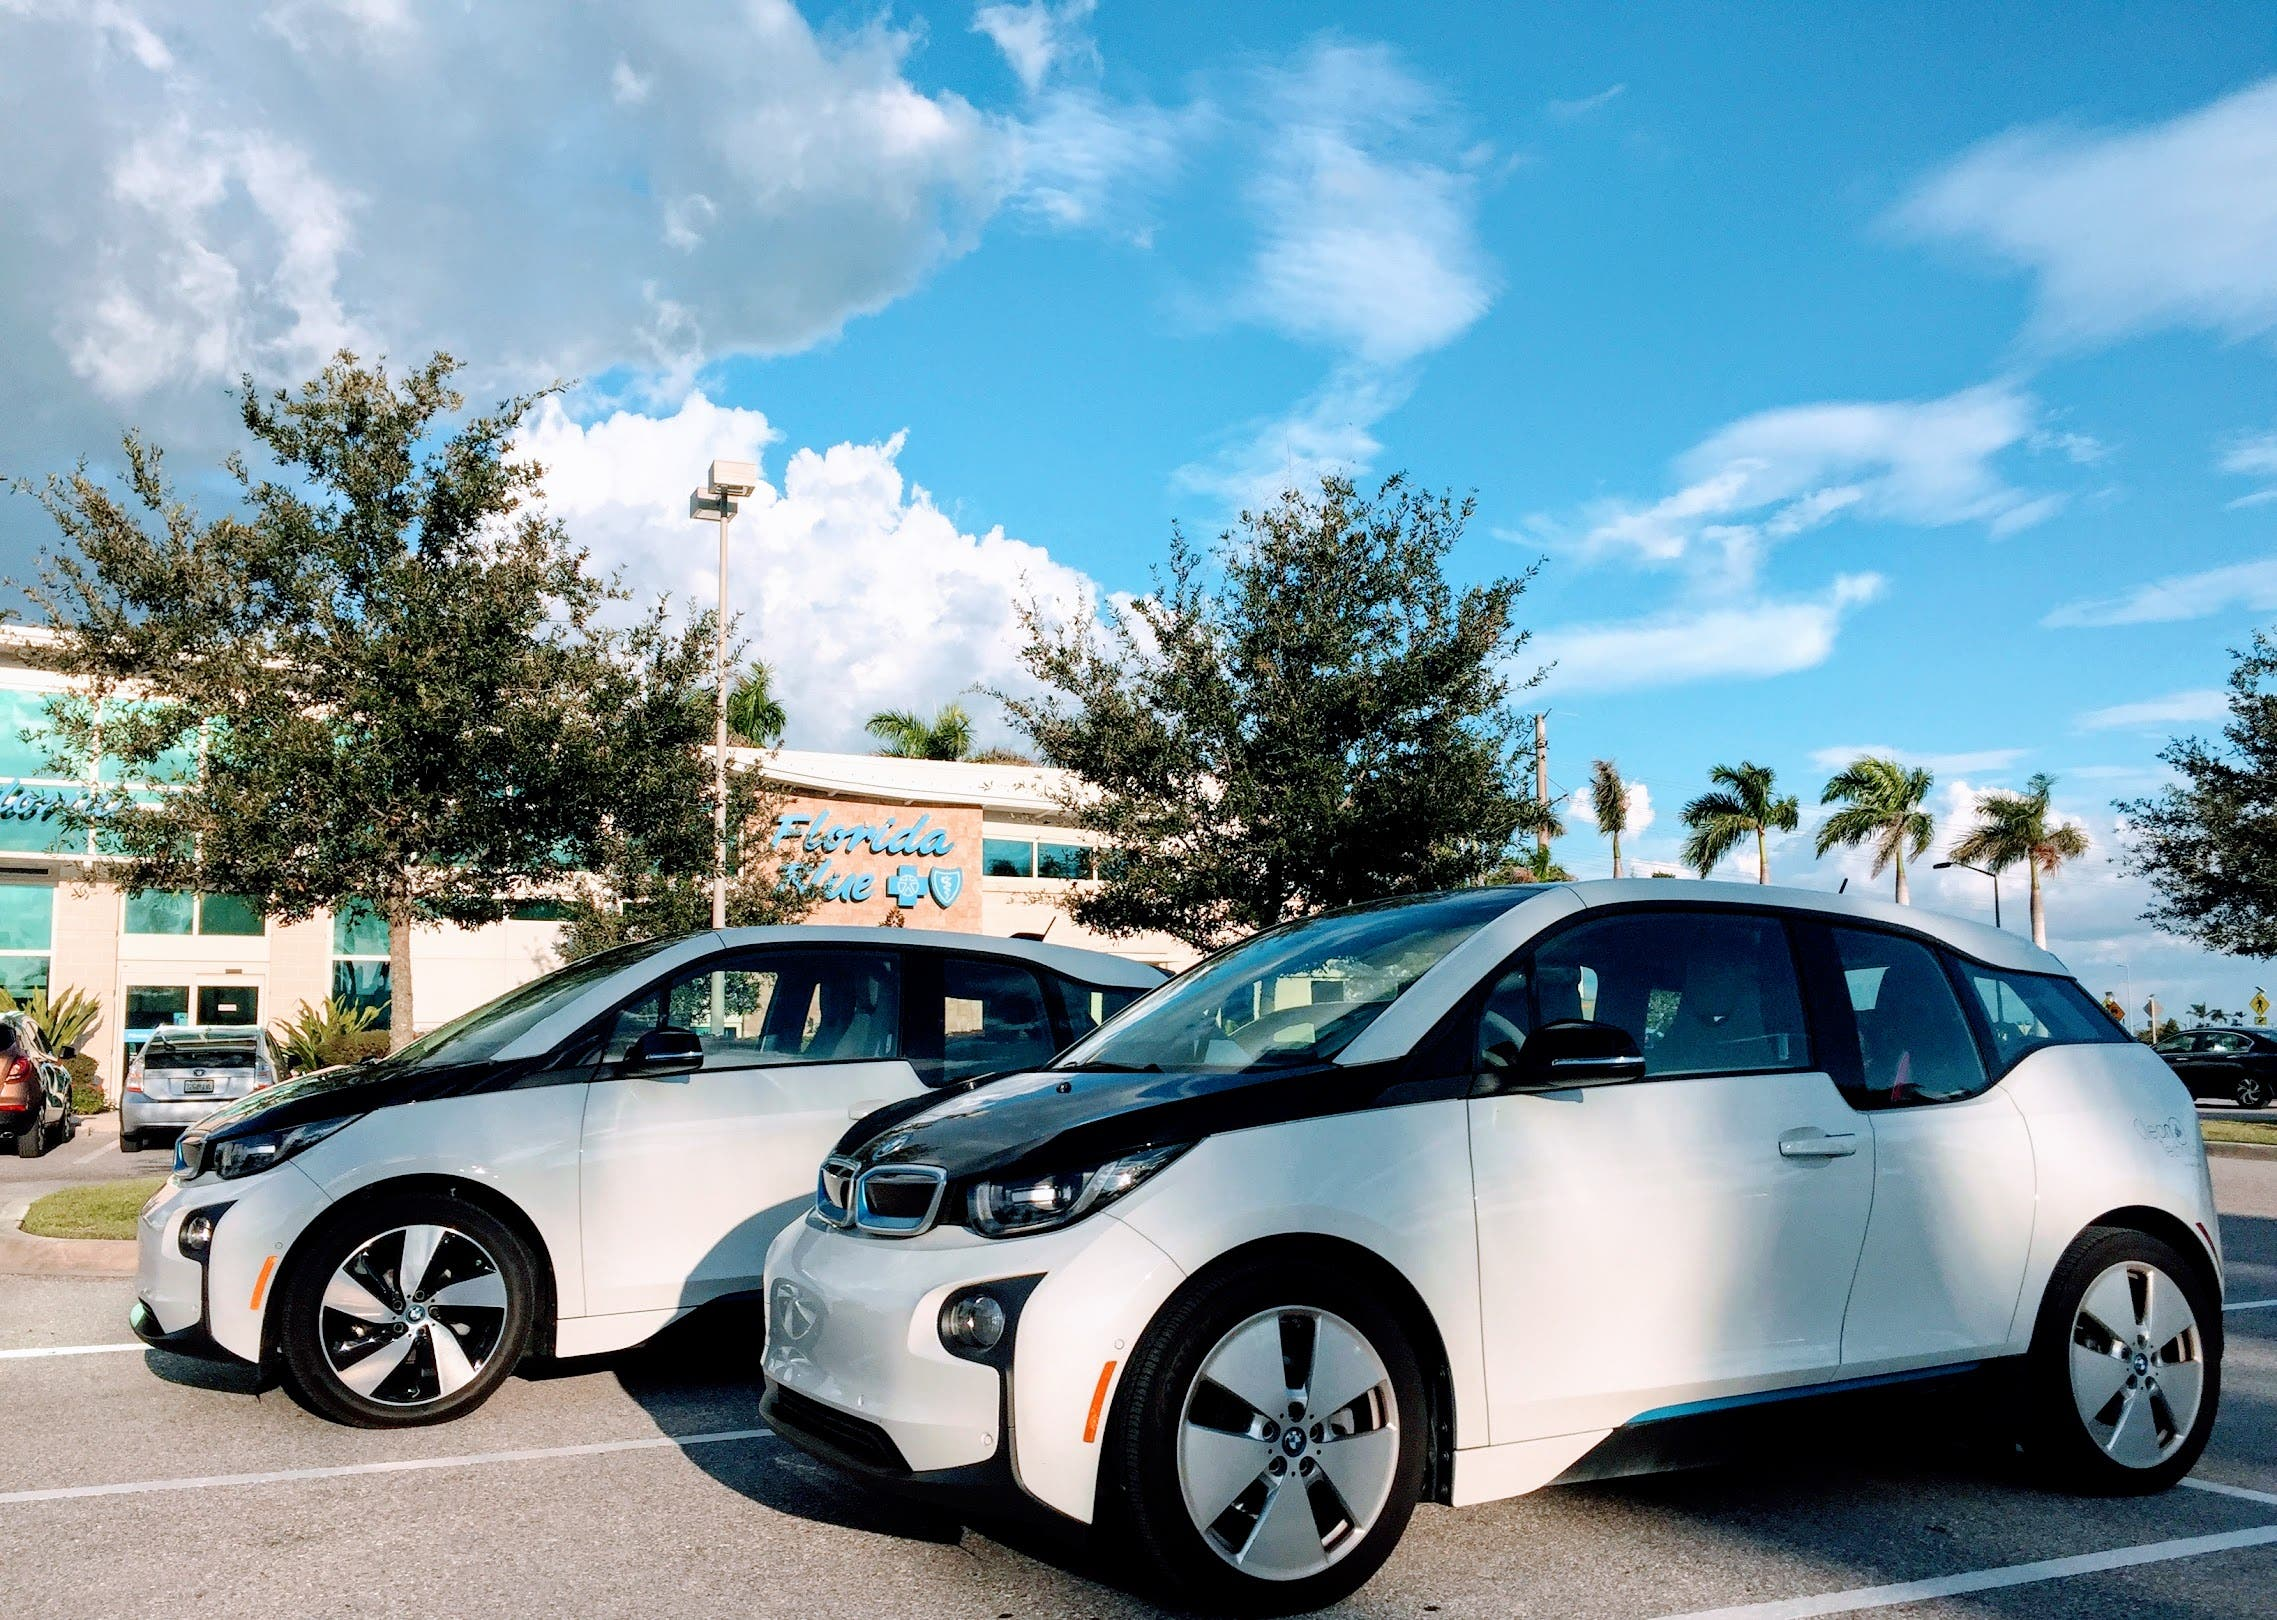 Will South Africa Build Electric Vehicles?